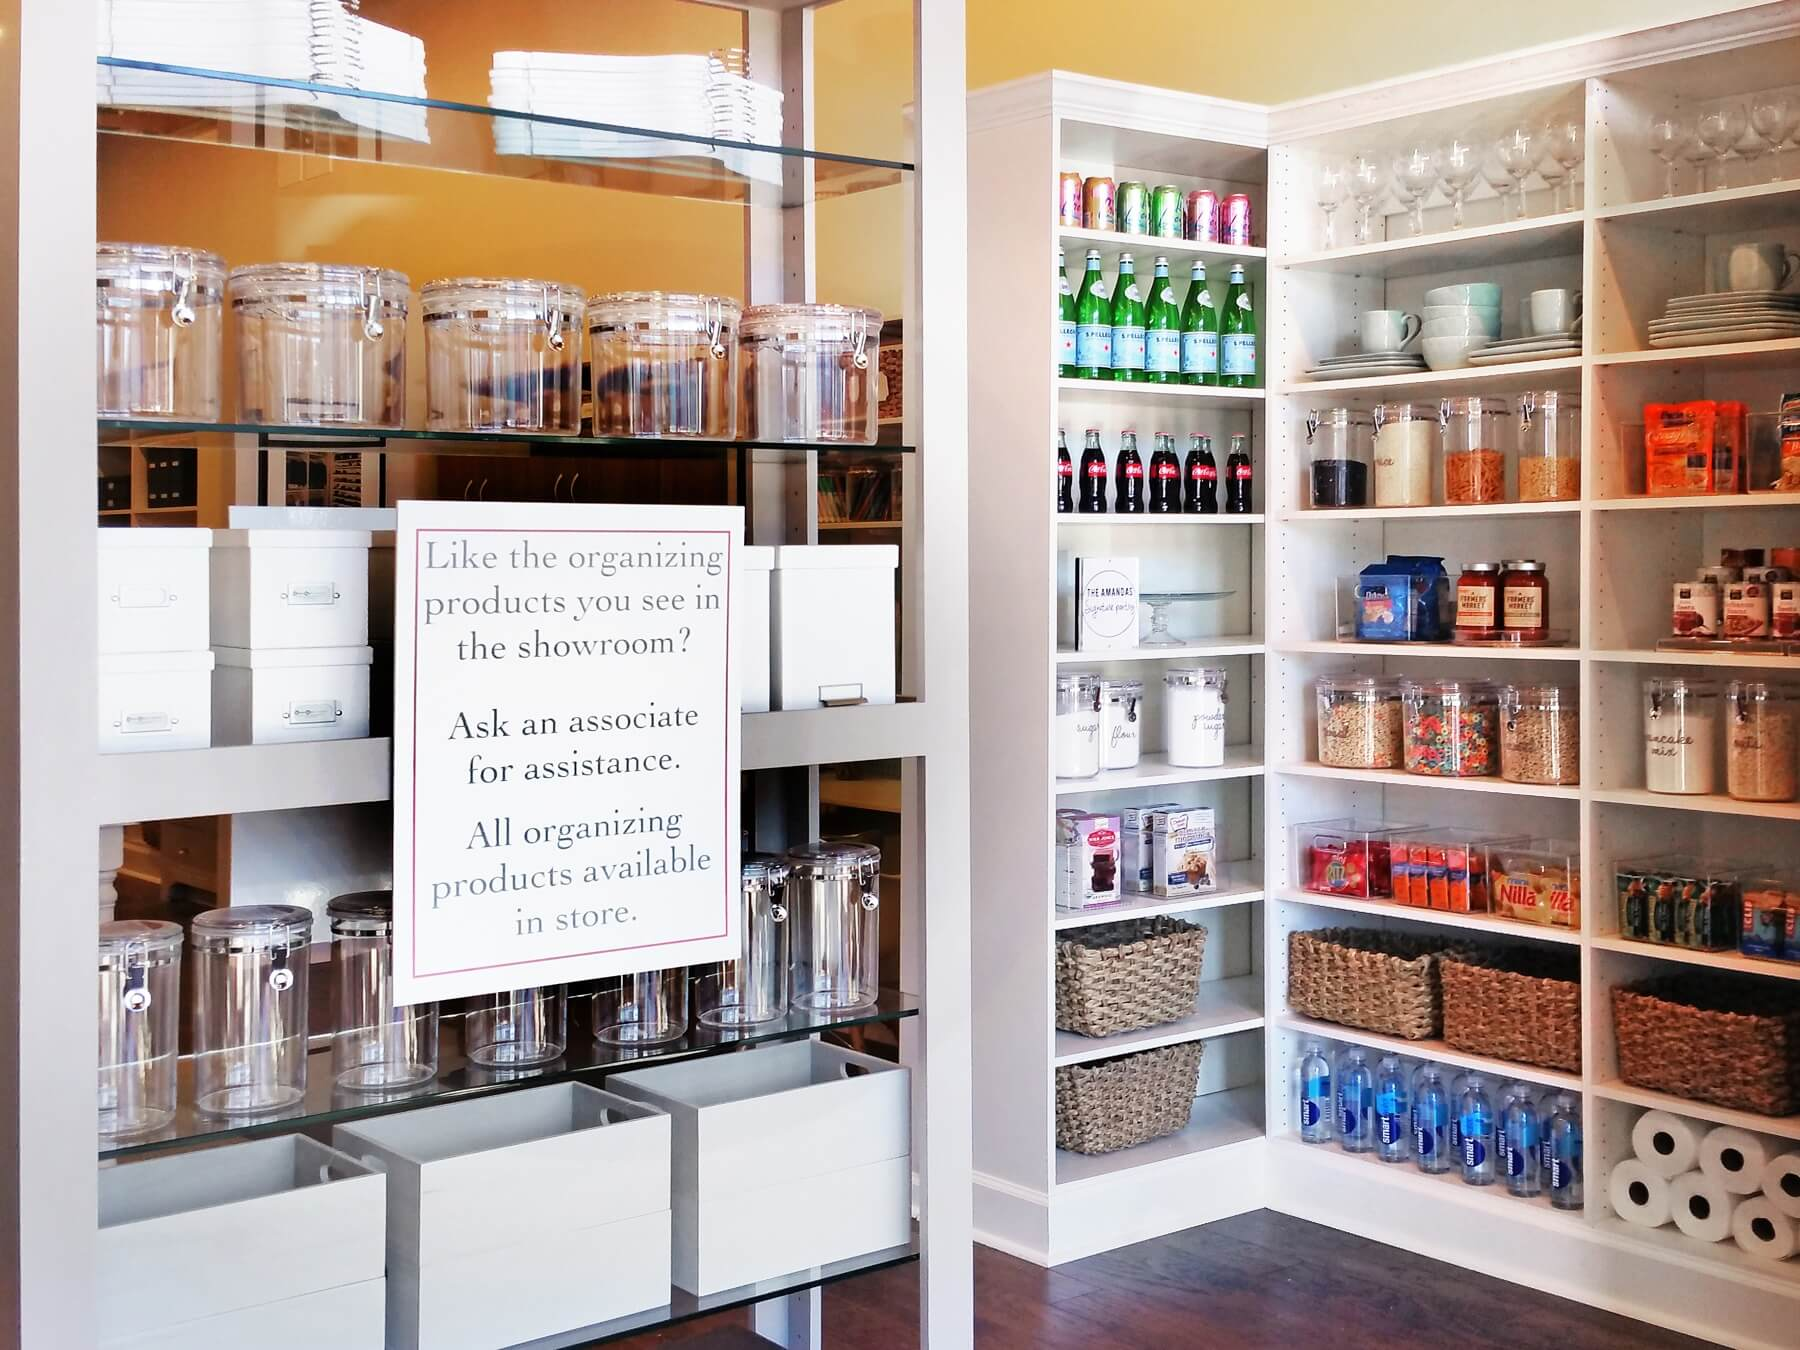 All of the organizing products from each vignette are available to purchase at The Amandas showroom.